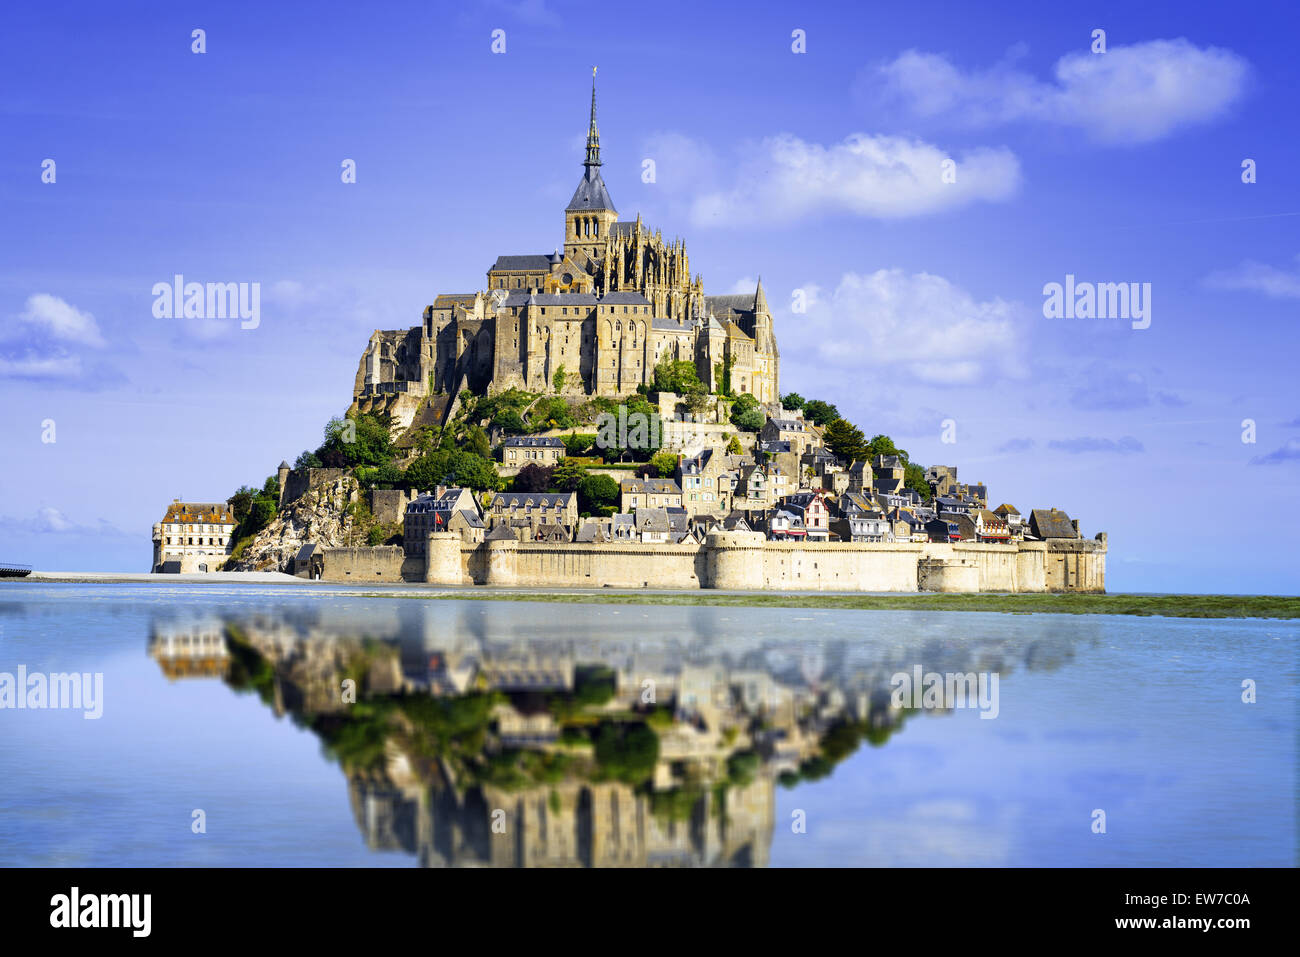 Mont saint Michel - Normandy - France - Stock Image